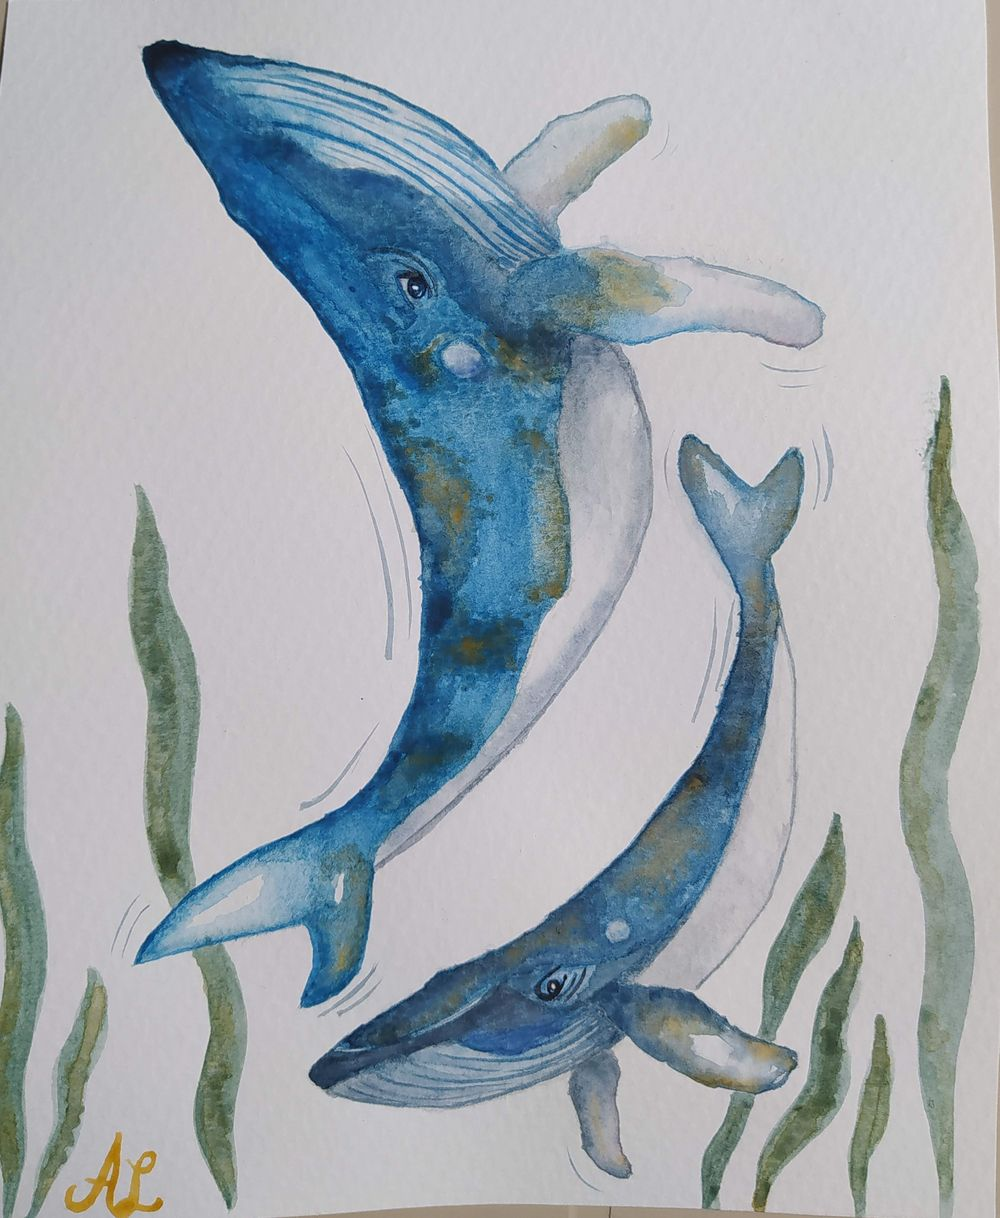 Whale and whale calf - image 1 - student project